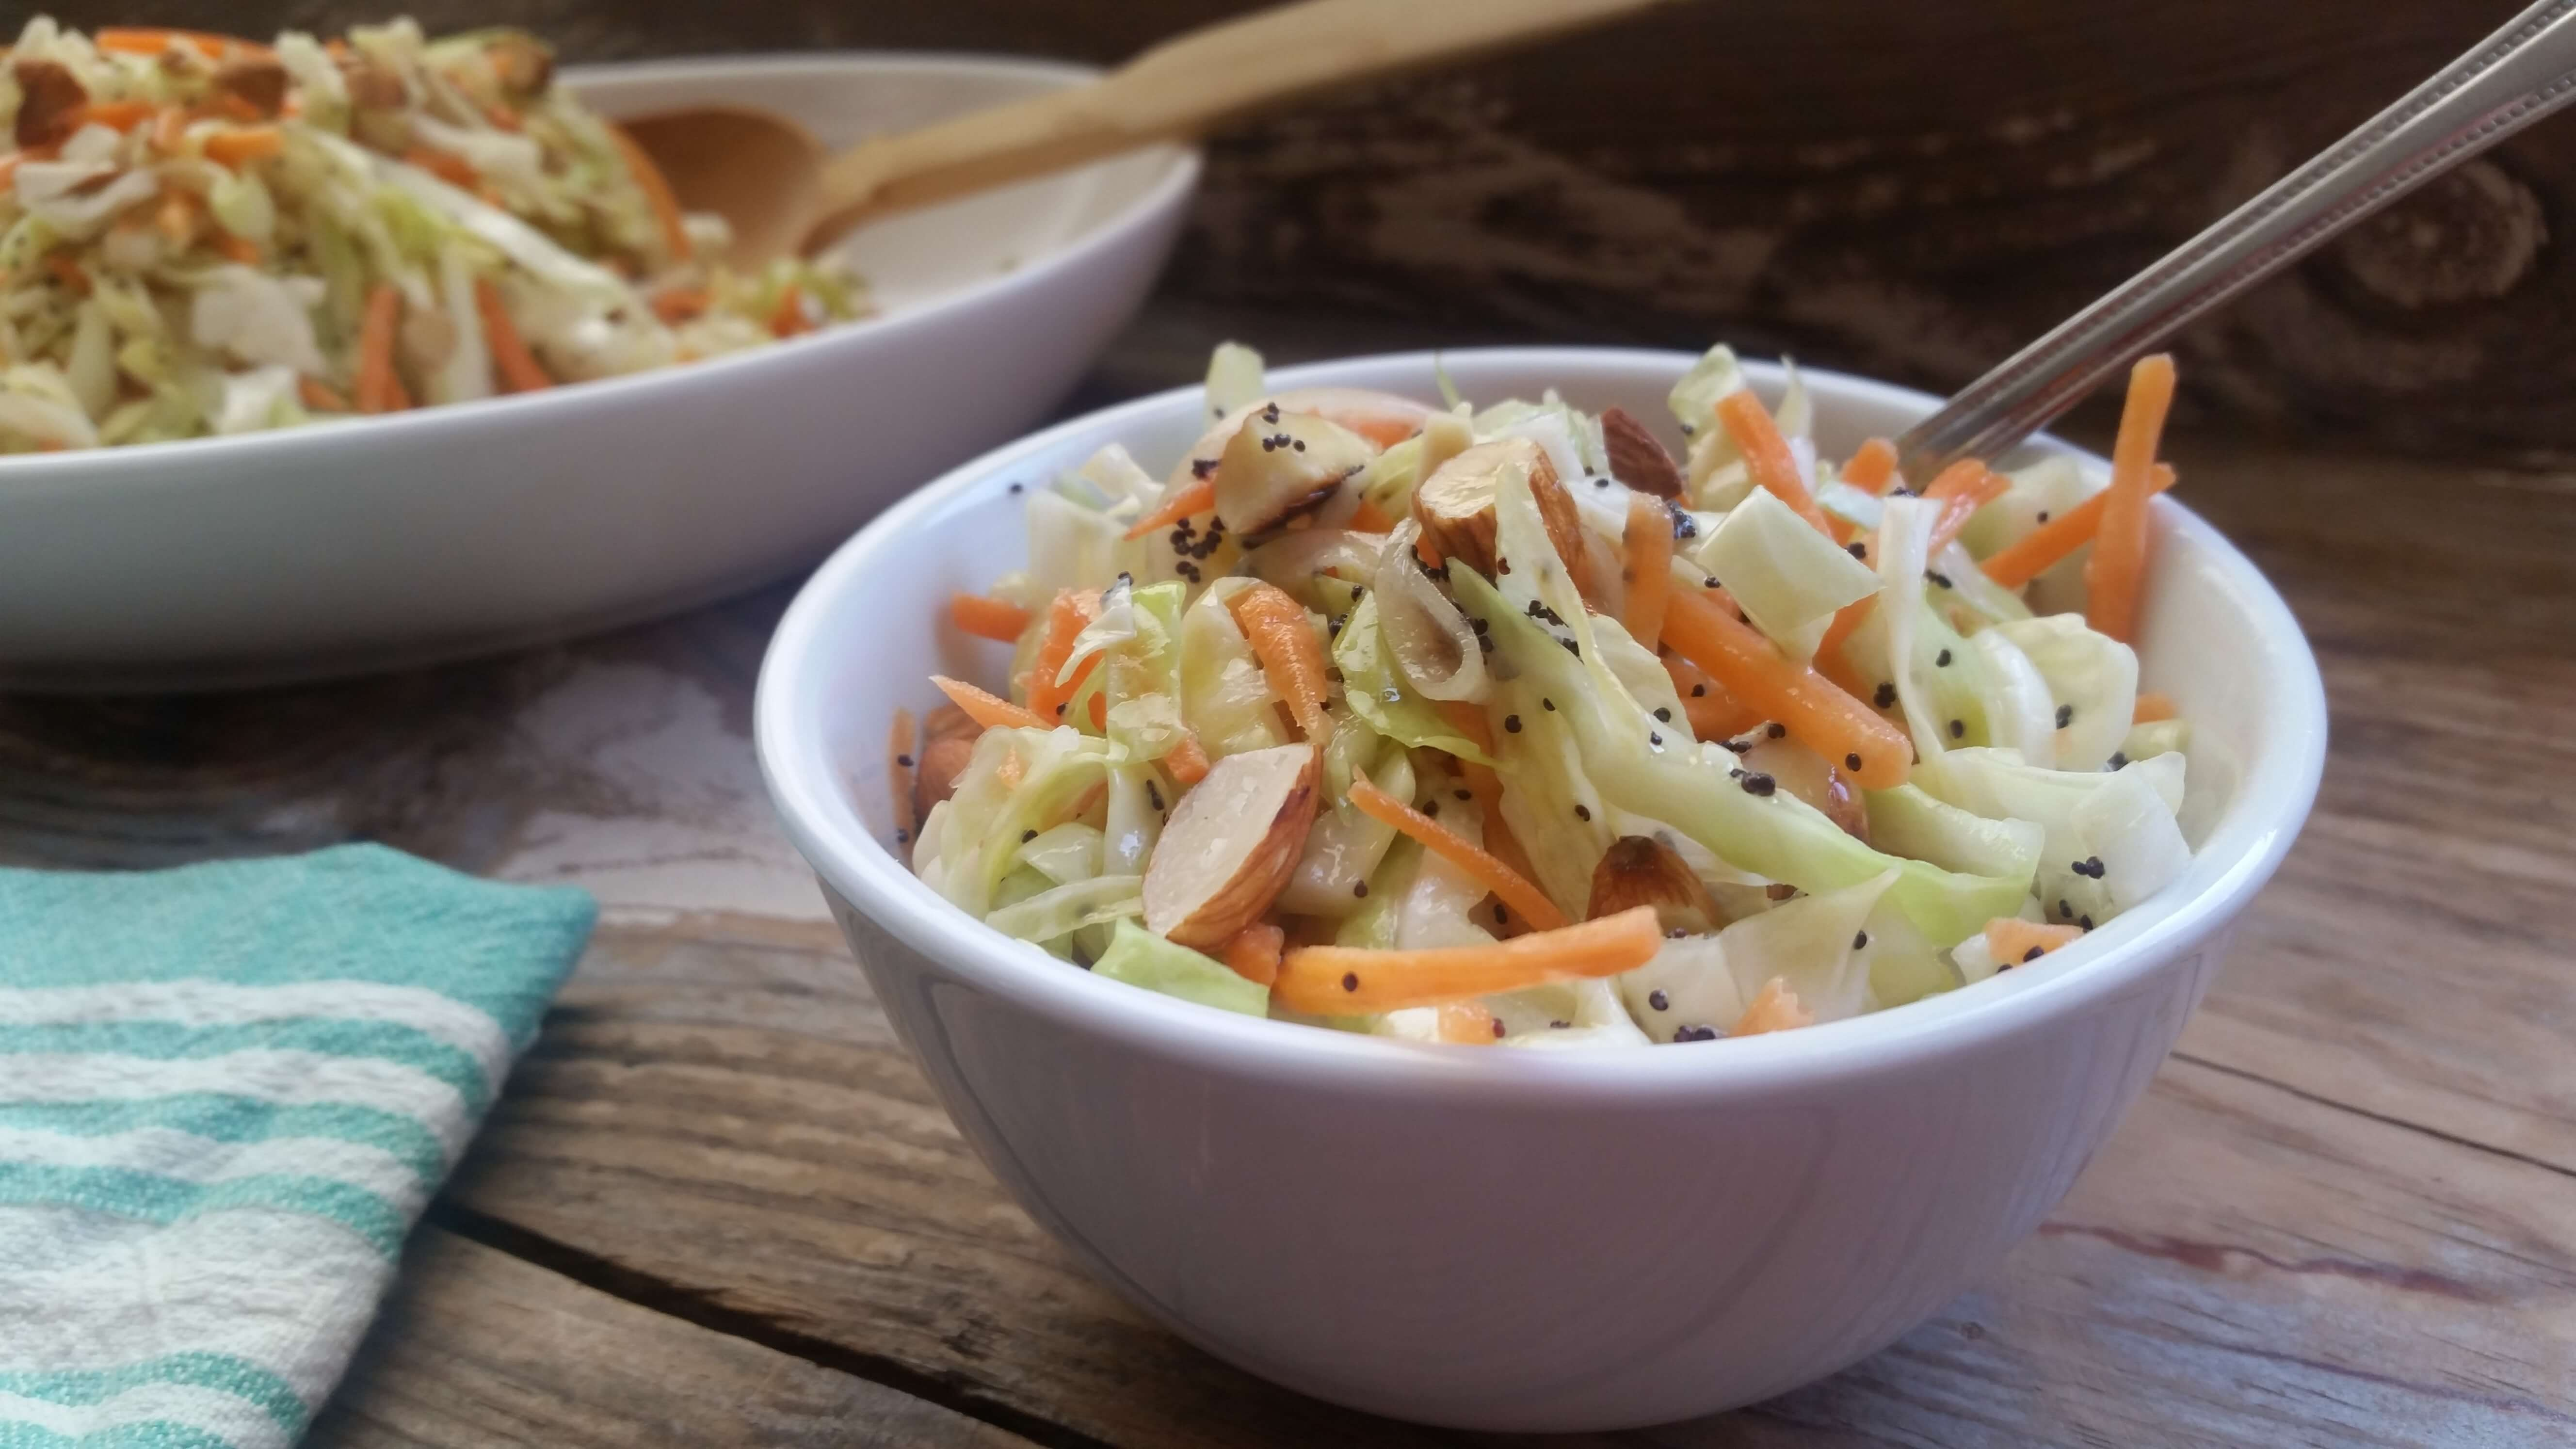 Cabbage Salad Recipe with Sweet Poppyseed Dressing